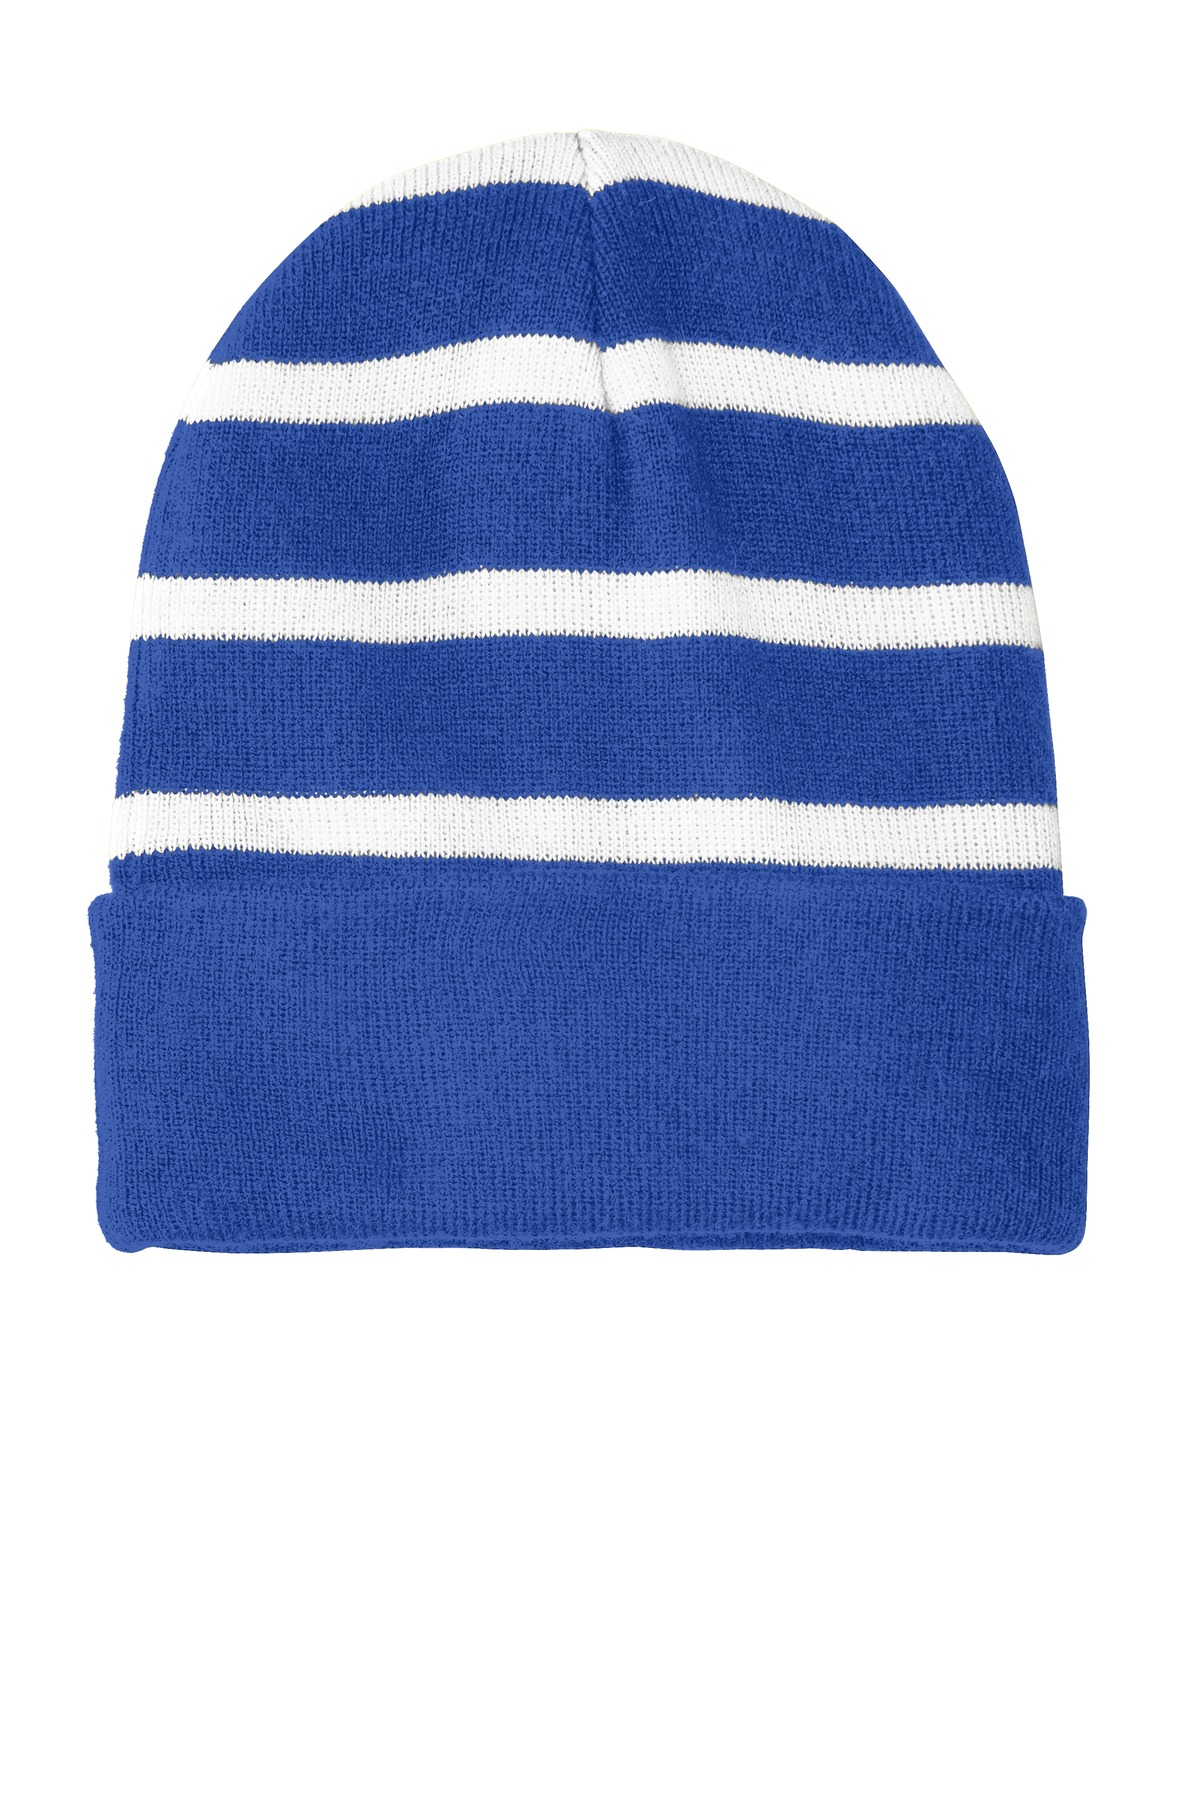 Sport-Tek ®  Striped Beanie with Solid Band. STC31 - True Royal/ White